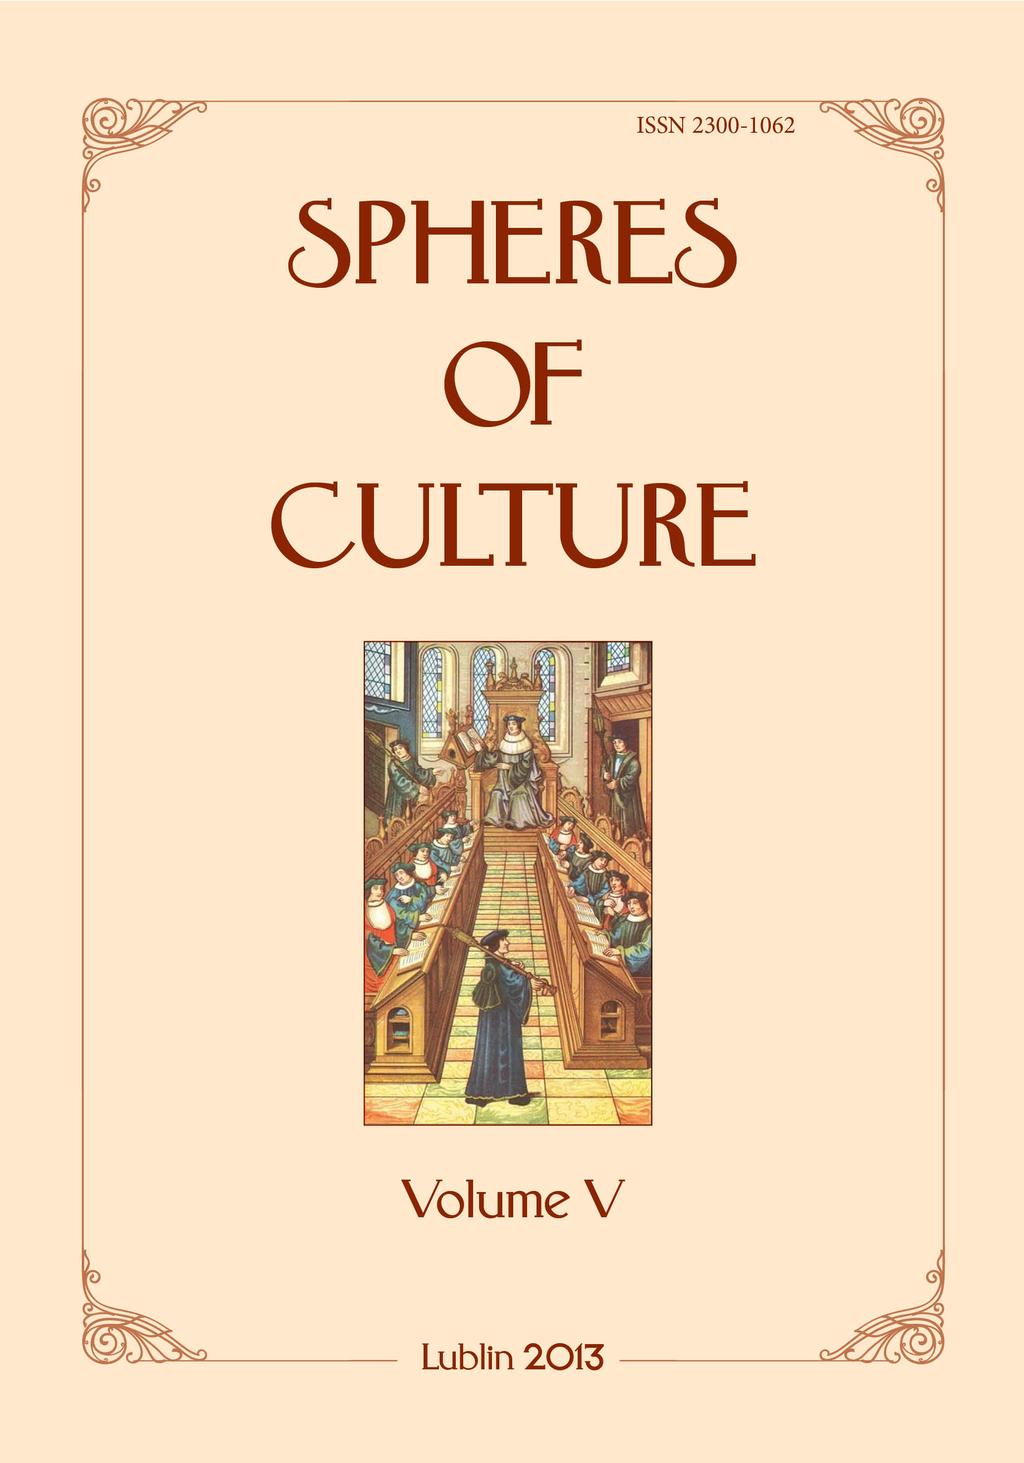 Spheres of culture. Journal of Philology 6ec3f033818a8